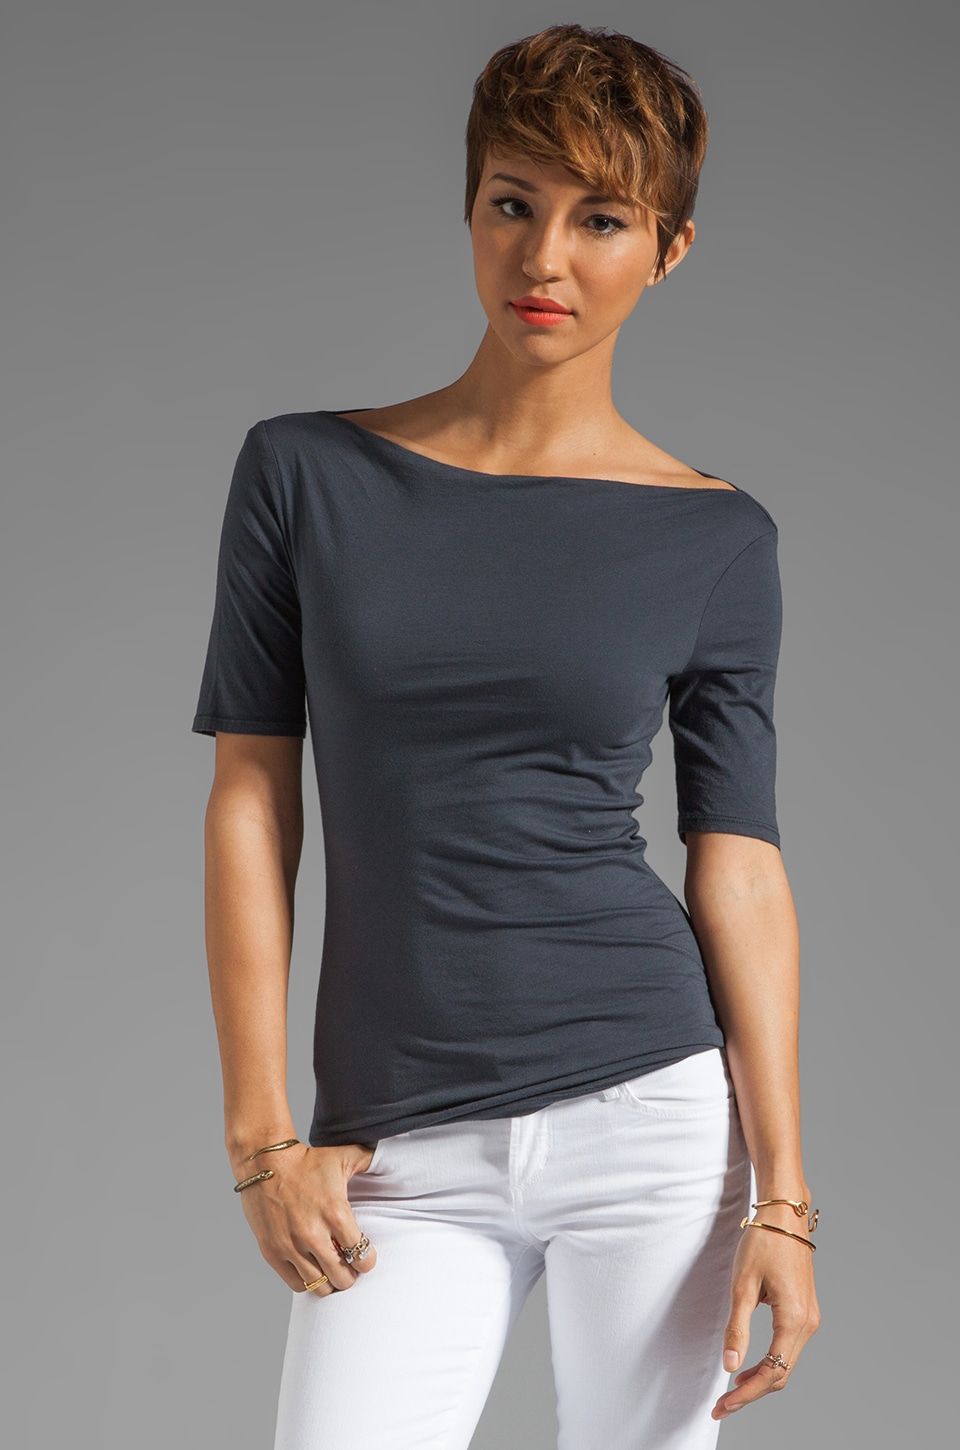 Velvet by Graham & Spencer Gauzy Whisper Classics Jenifer Top in Carbon